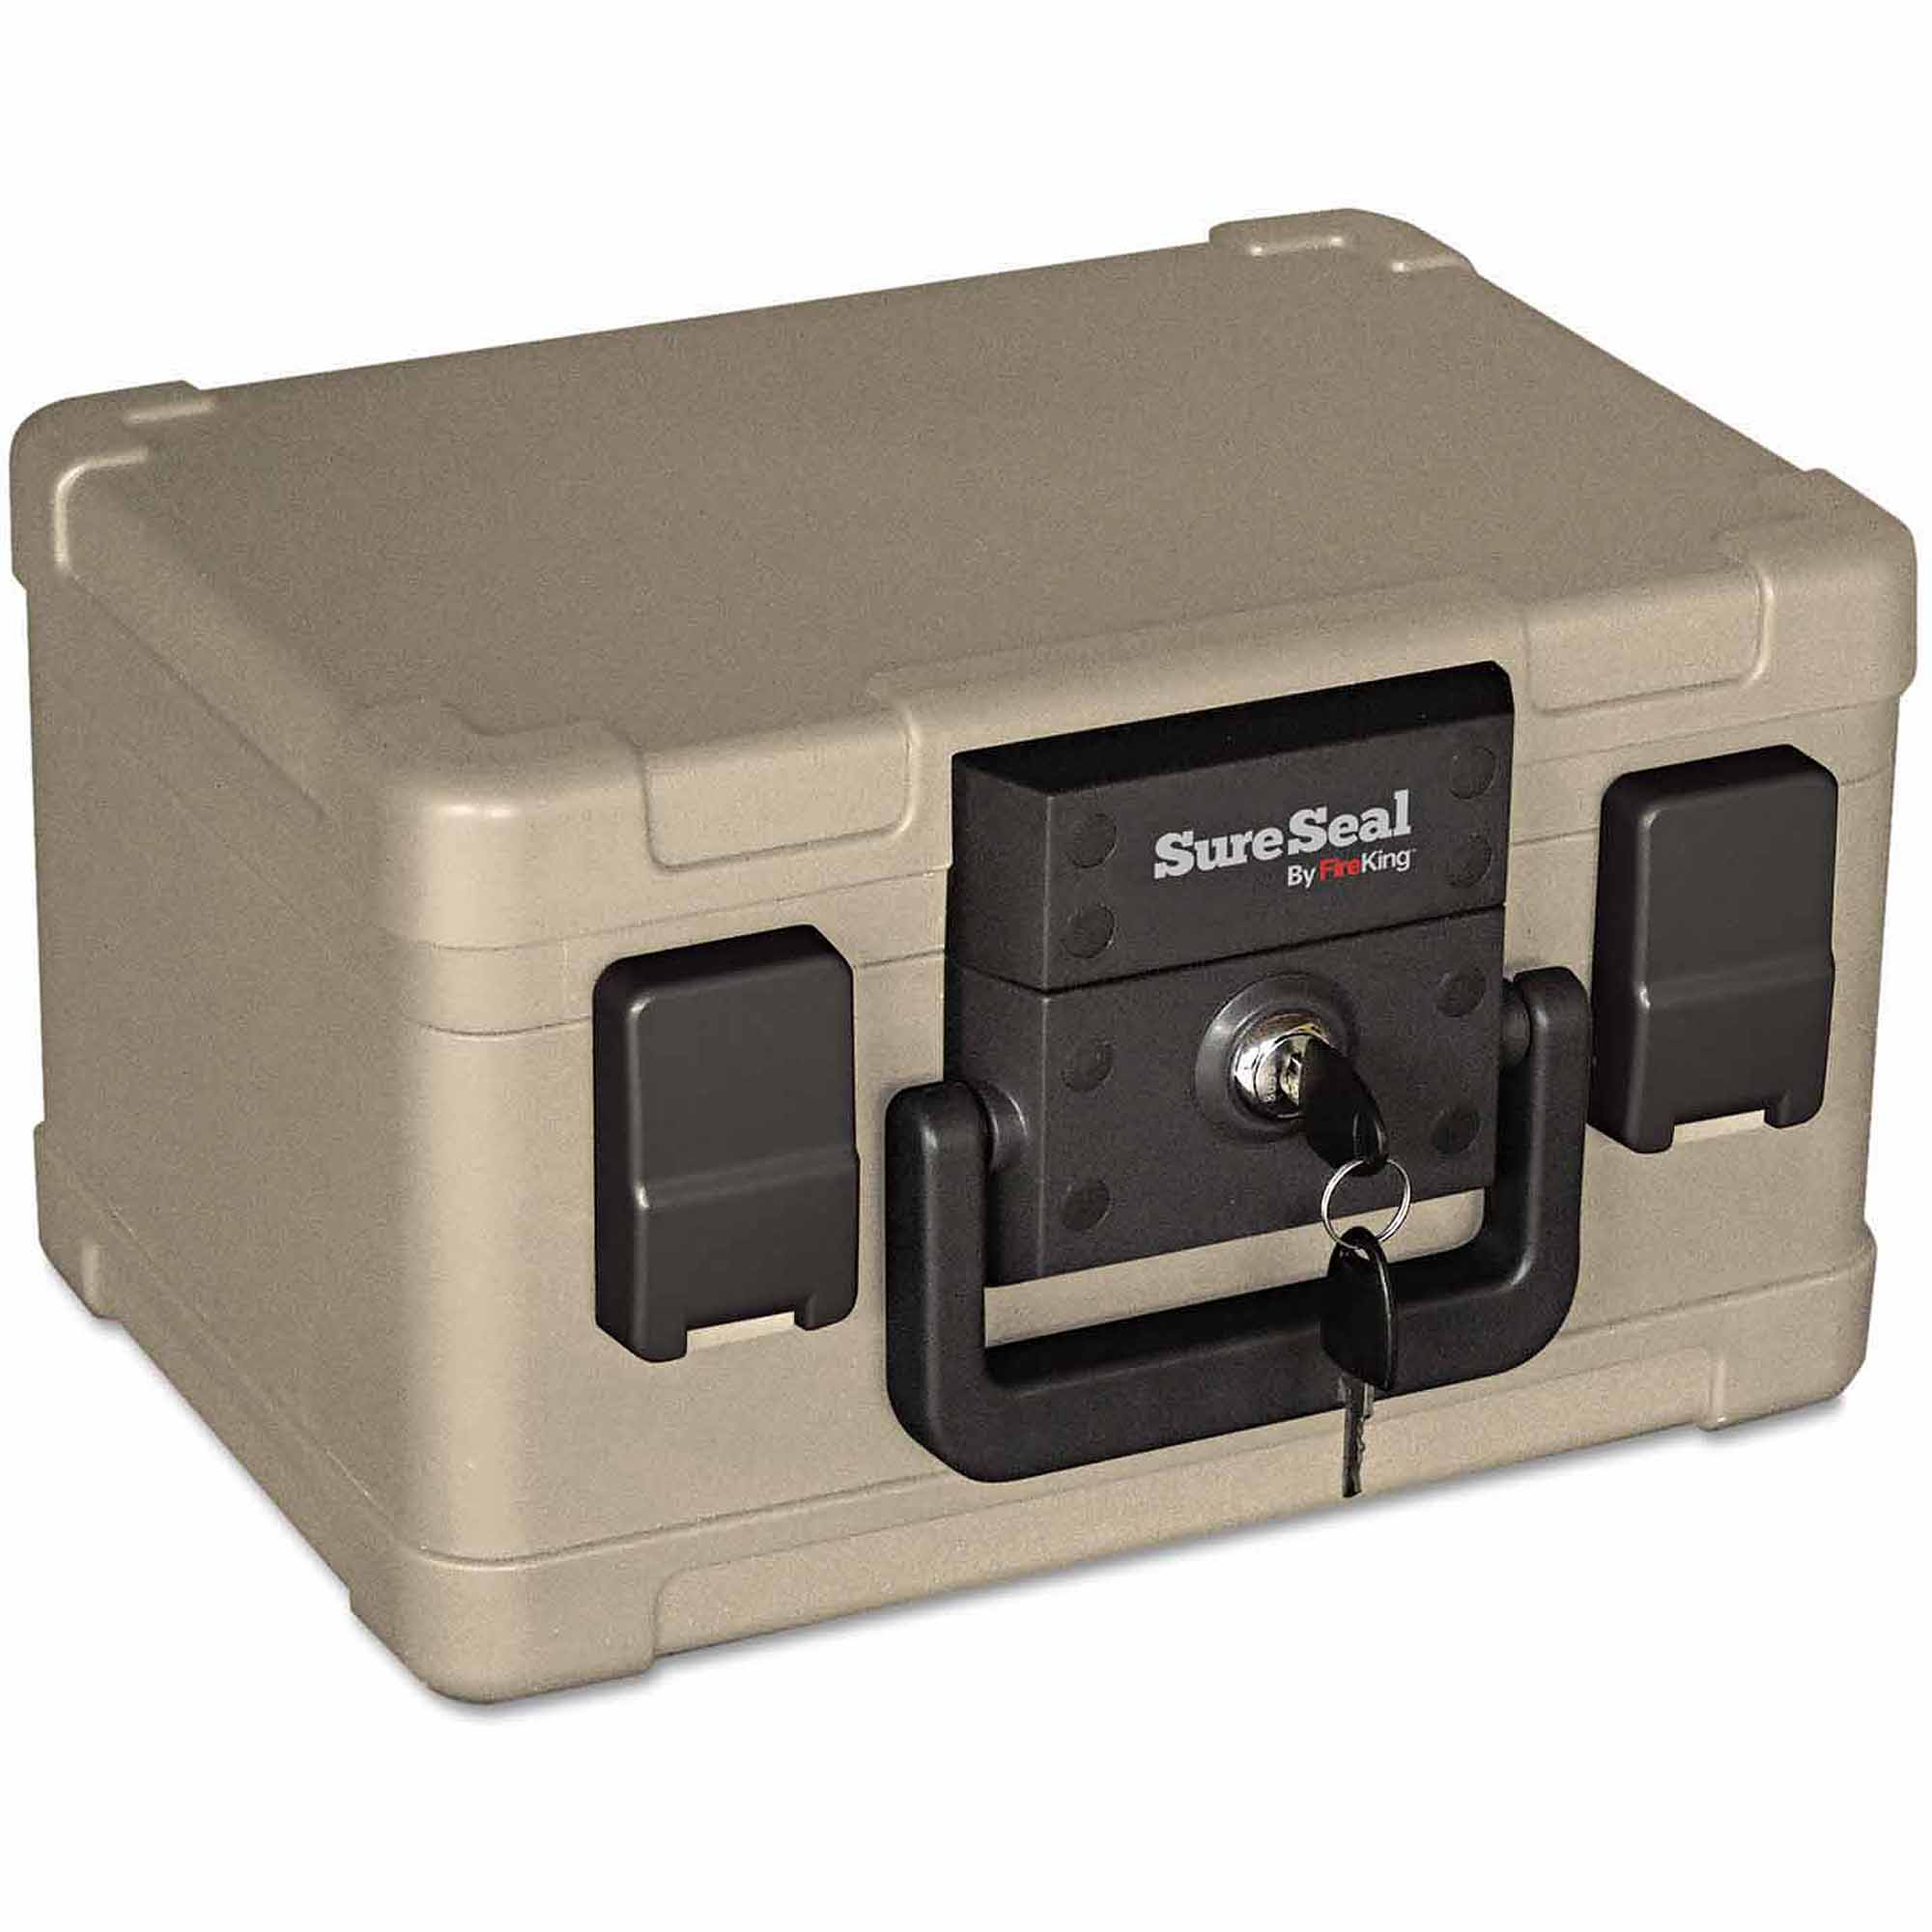 "SureSeal By FireKing Fire and Waterproof Chest, 12-1/5"" x 9-4/5"" x 7-3/10"", Taupe"